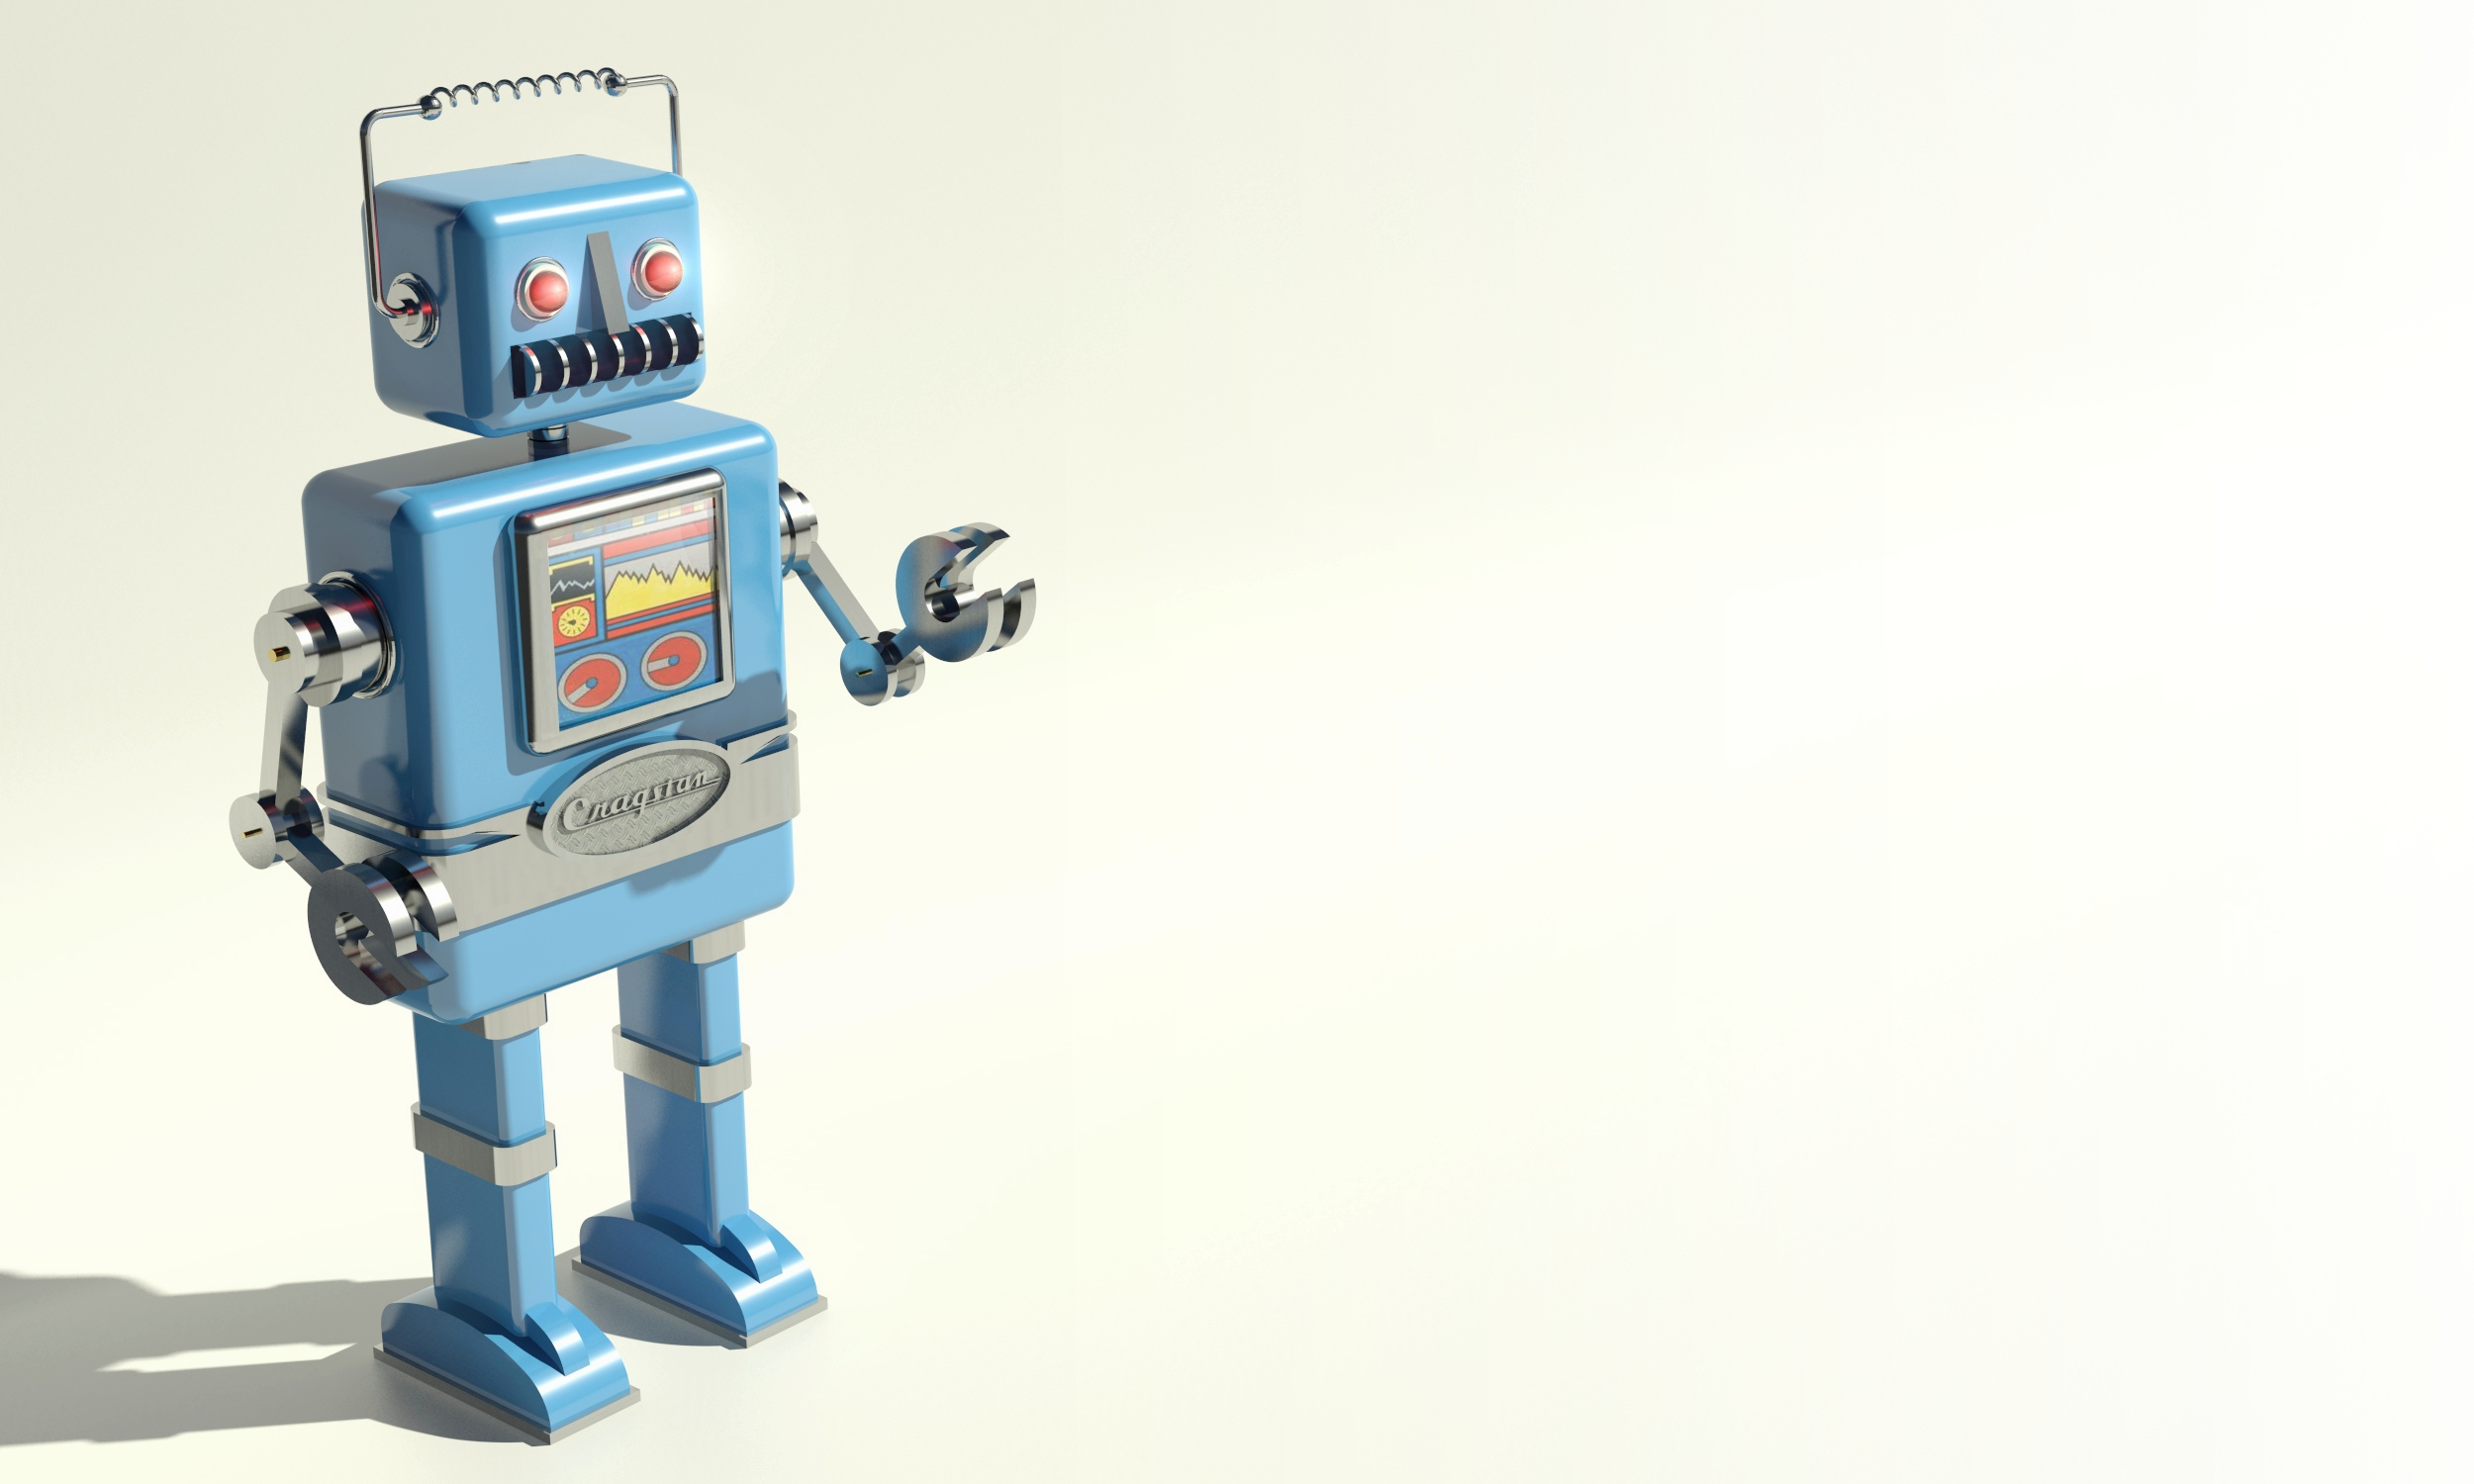 Awesome Hd Robot Wallpapers Backgrounds For Free Download